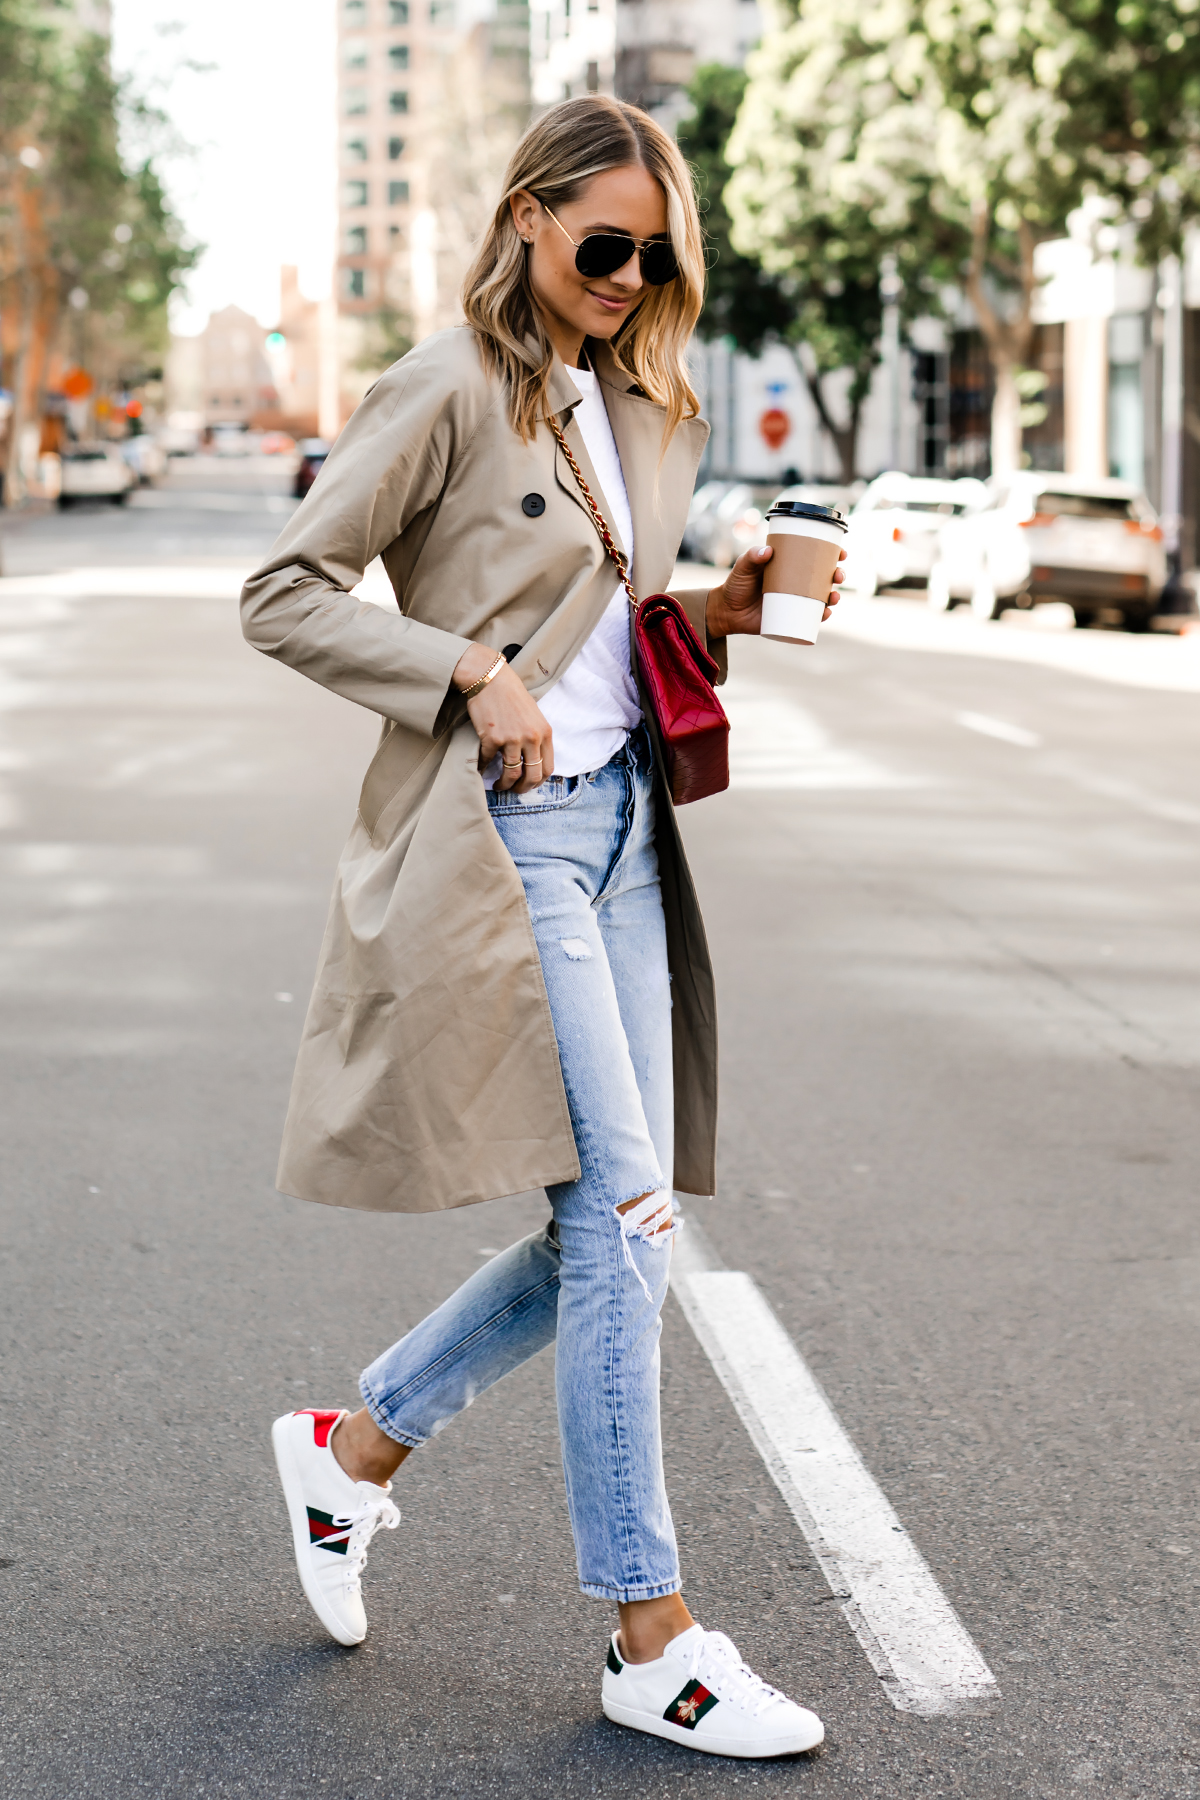 99c5af993 Blonde Woman Wearing Everlane Trench Coat White Tshirt Ripped Jeans Gucci  Ace Embroidered Sneakers Fashion Jackson